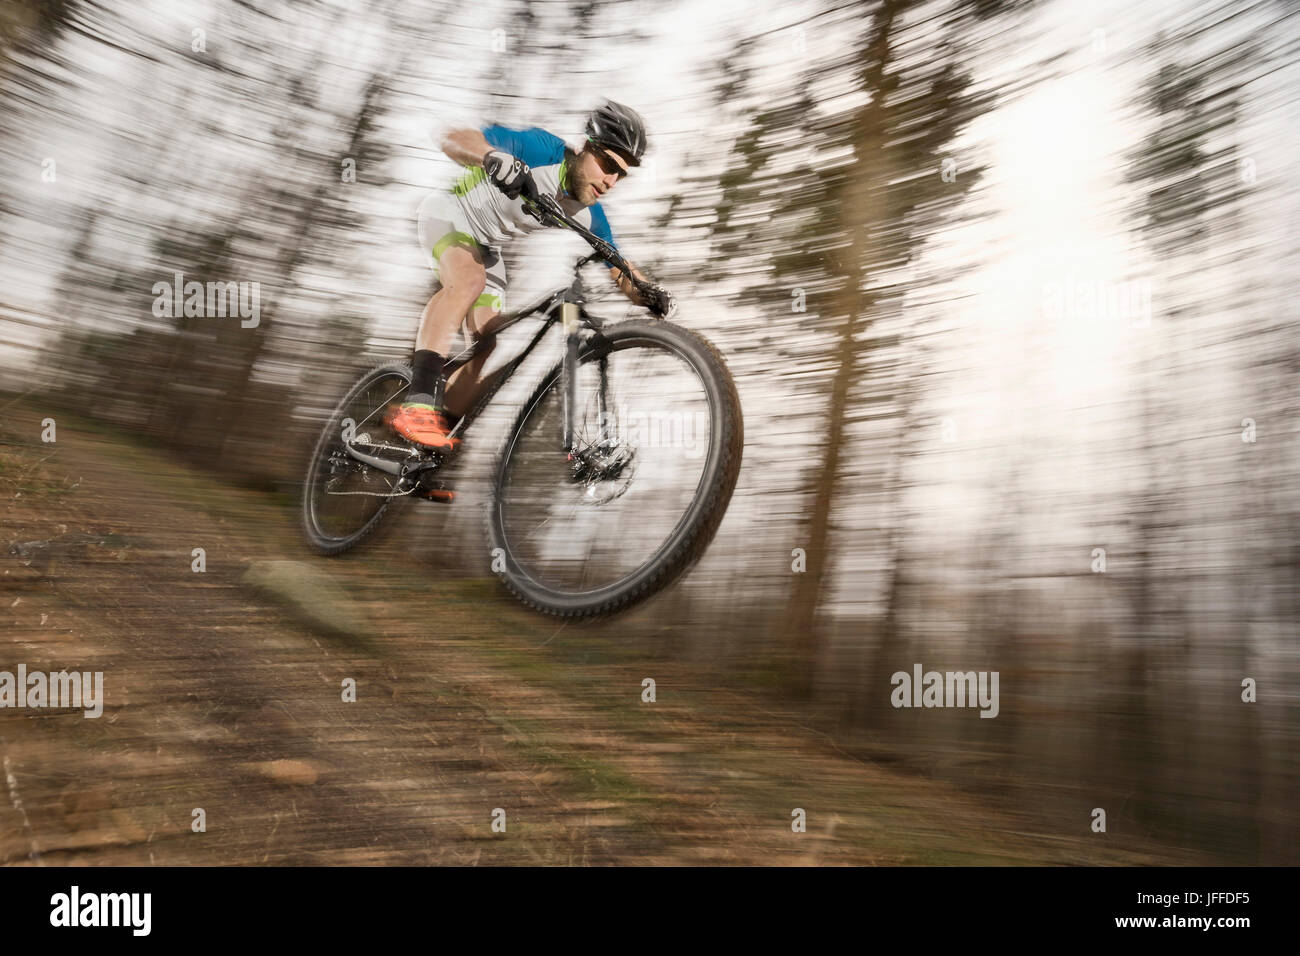 Mountain biker performing stunt in forest - Stock Image